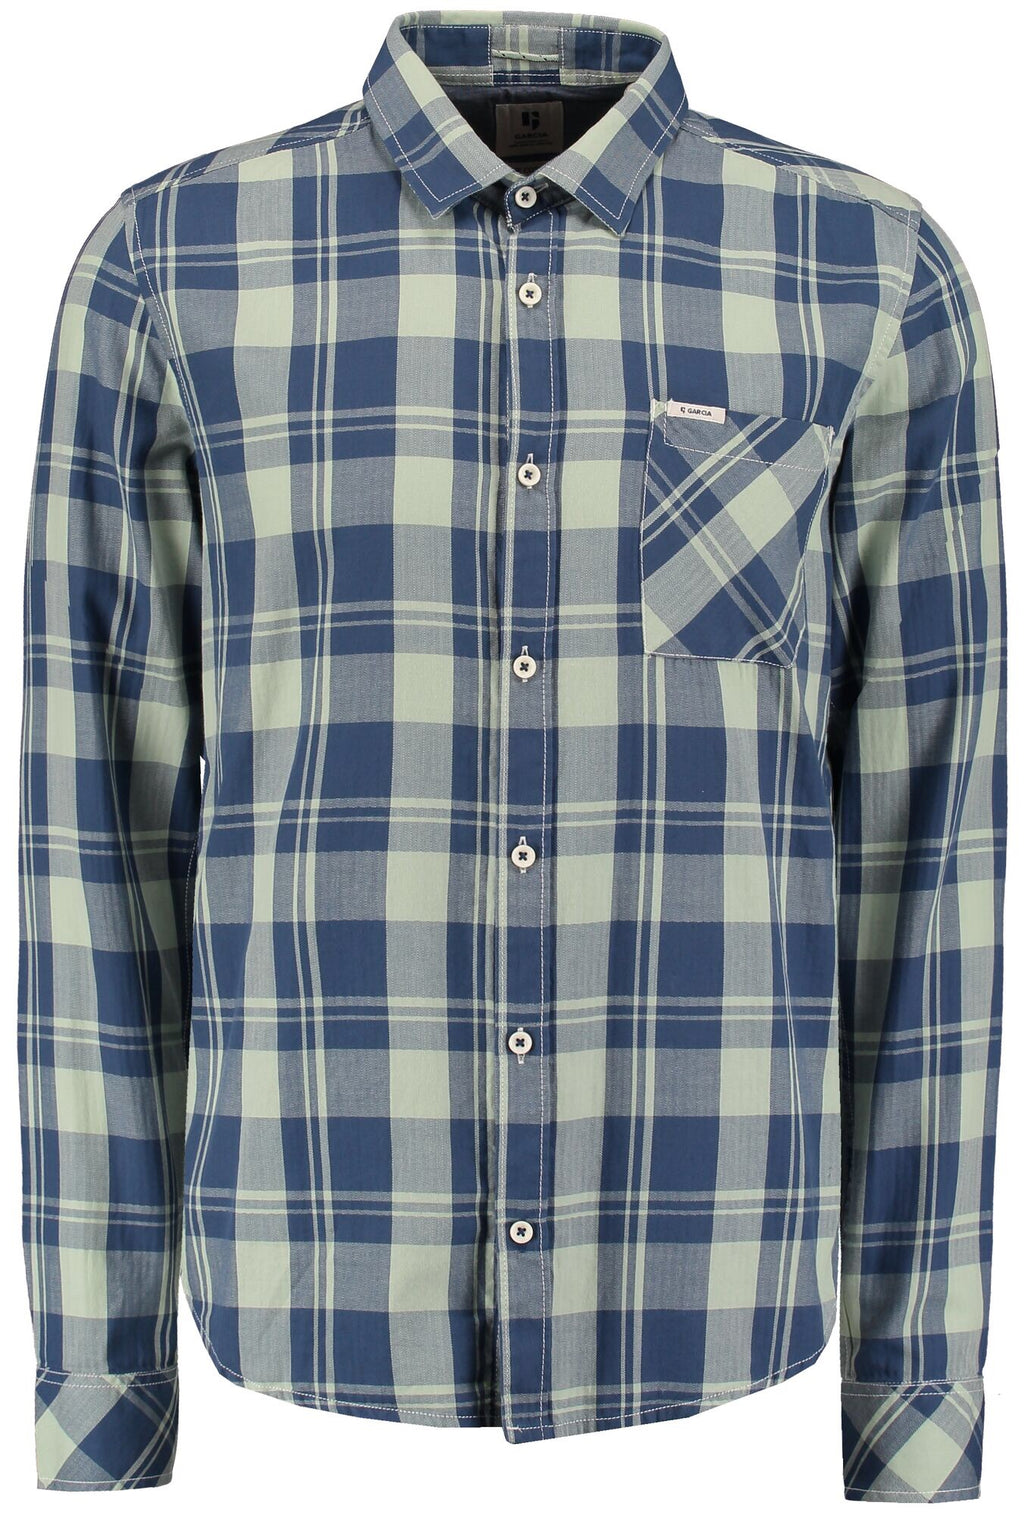 Garcia Hill Green Check Shirt -LAST ONE!